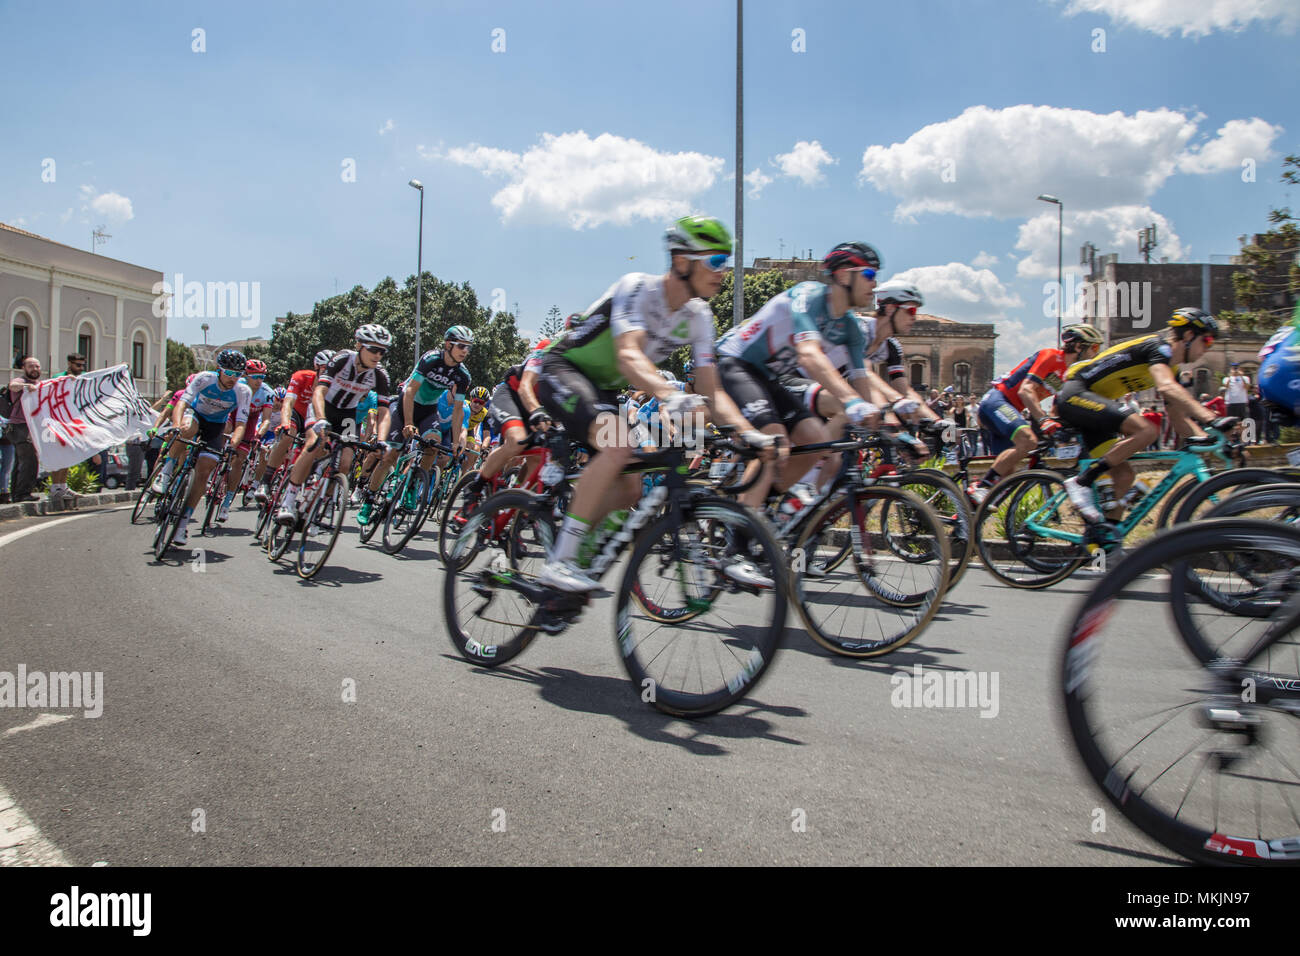 432ad0af2c Catania, 8 May 2018 - Giro d'Italia 2018 Credit: Wead/Alamy Live News